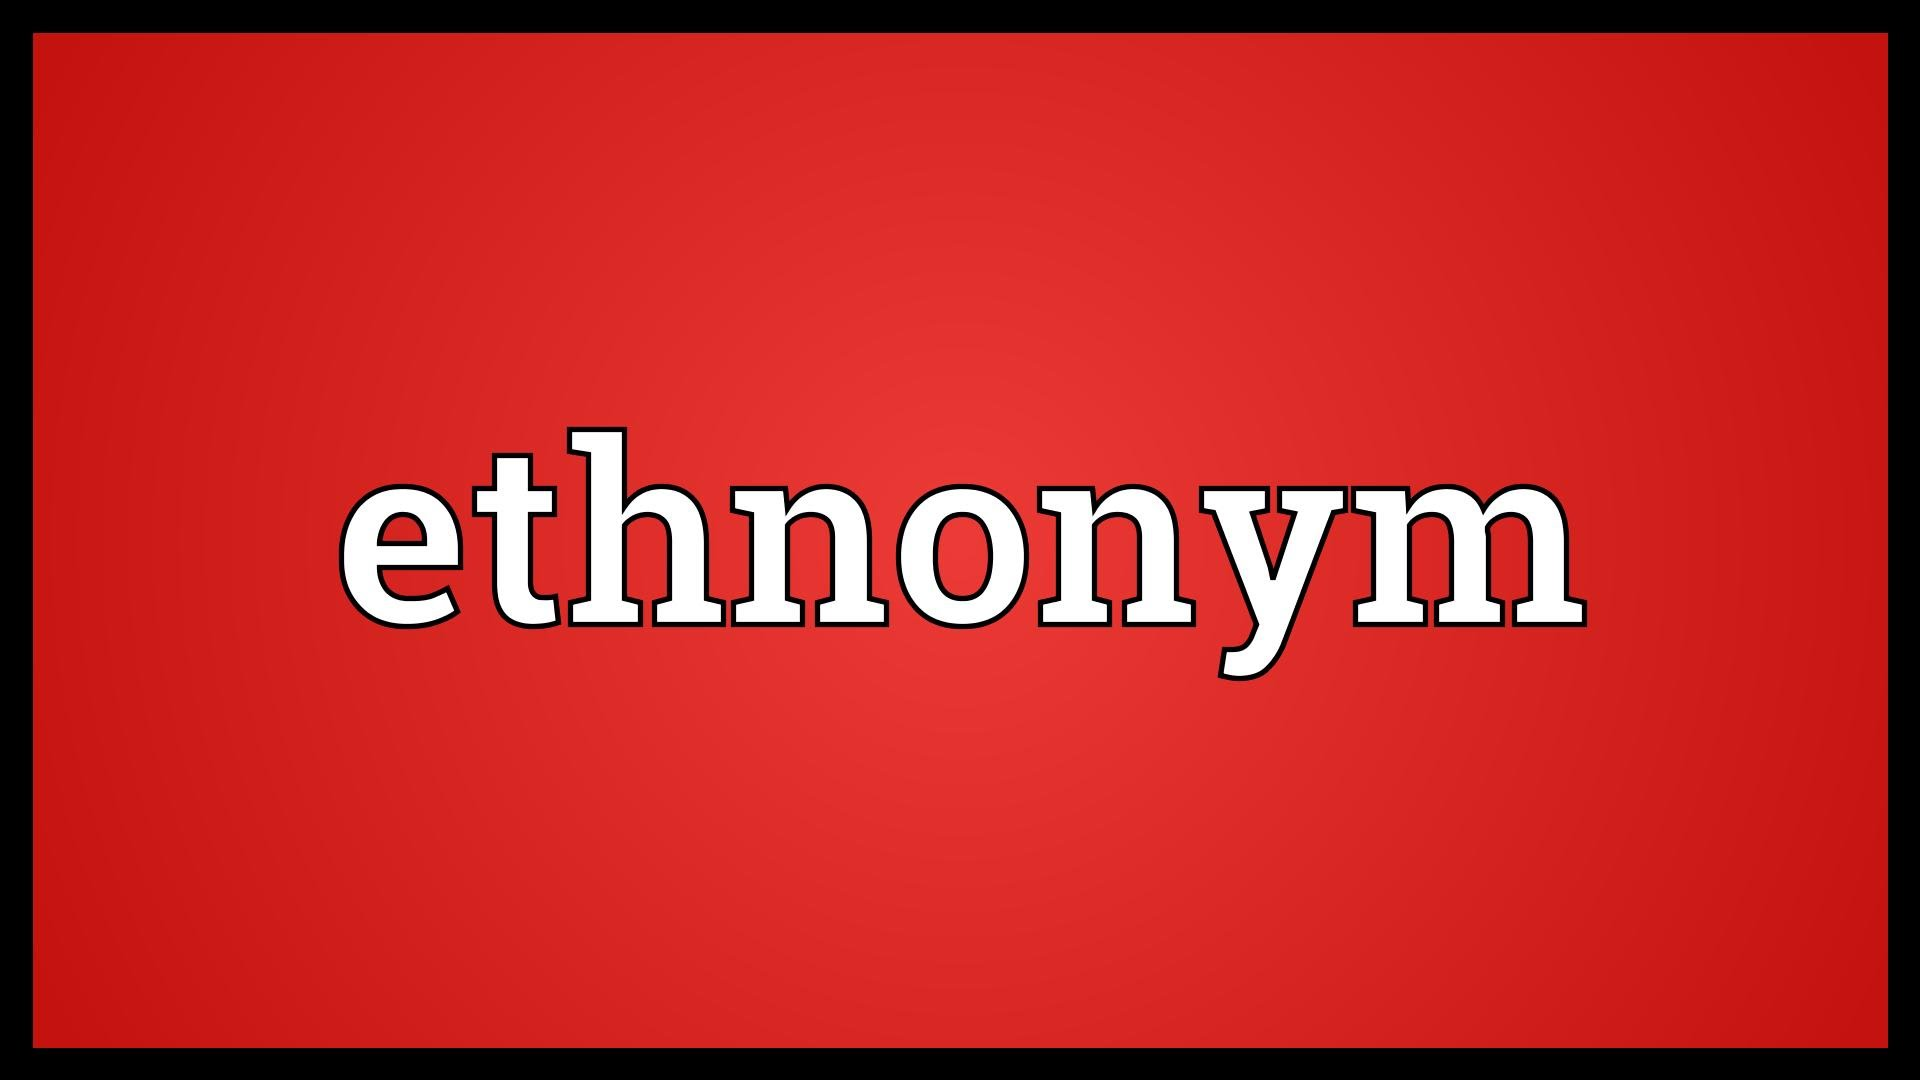 Ethnonyms In The Bible